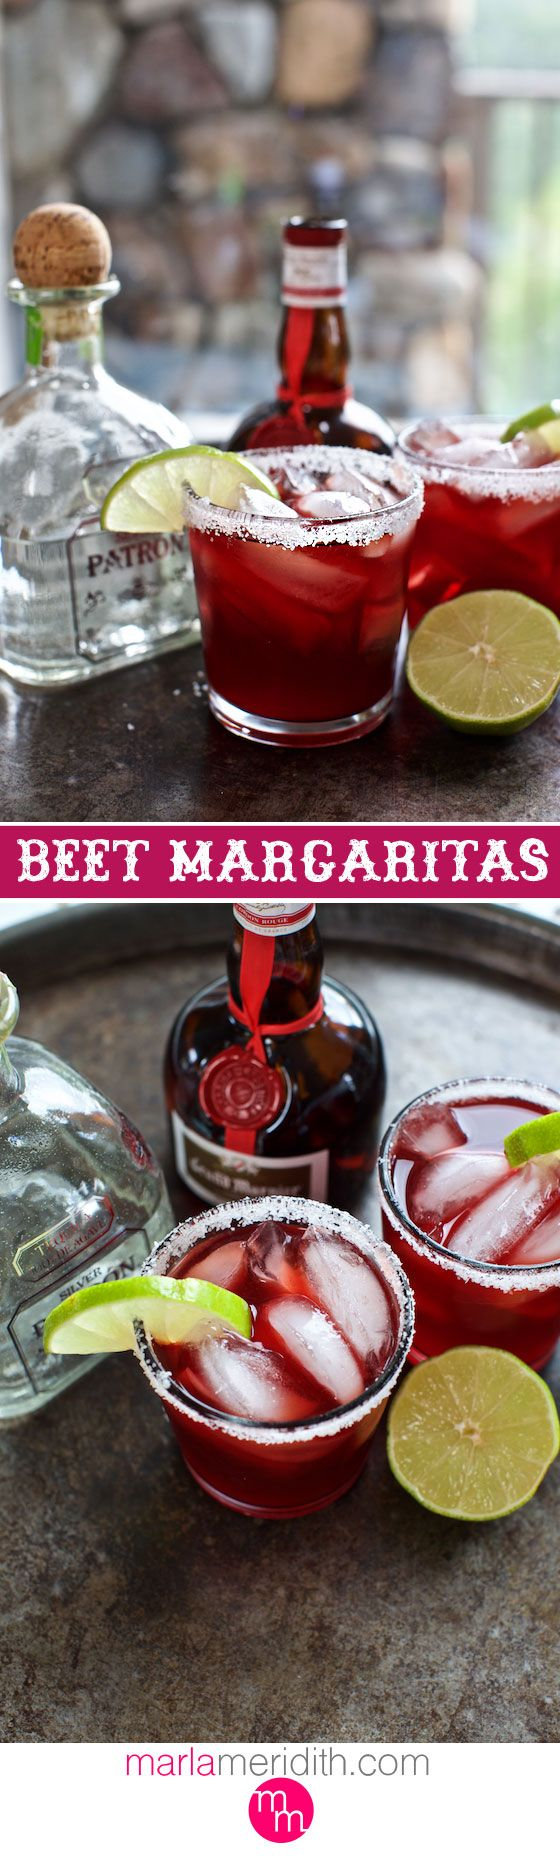 Beet Margaritas | A festive party cocktail! MarlaMeridith.com ( @marlameridith )